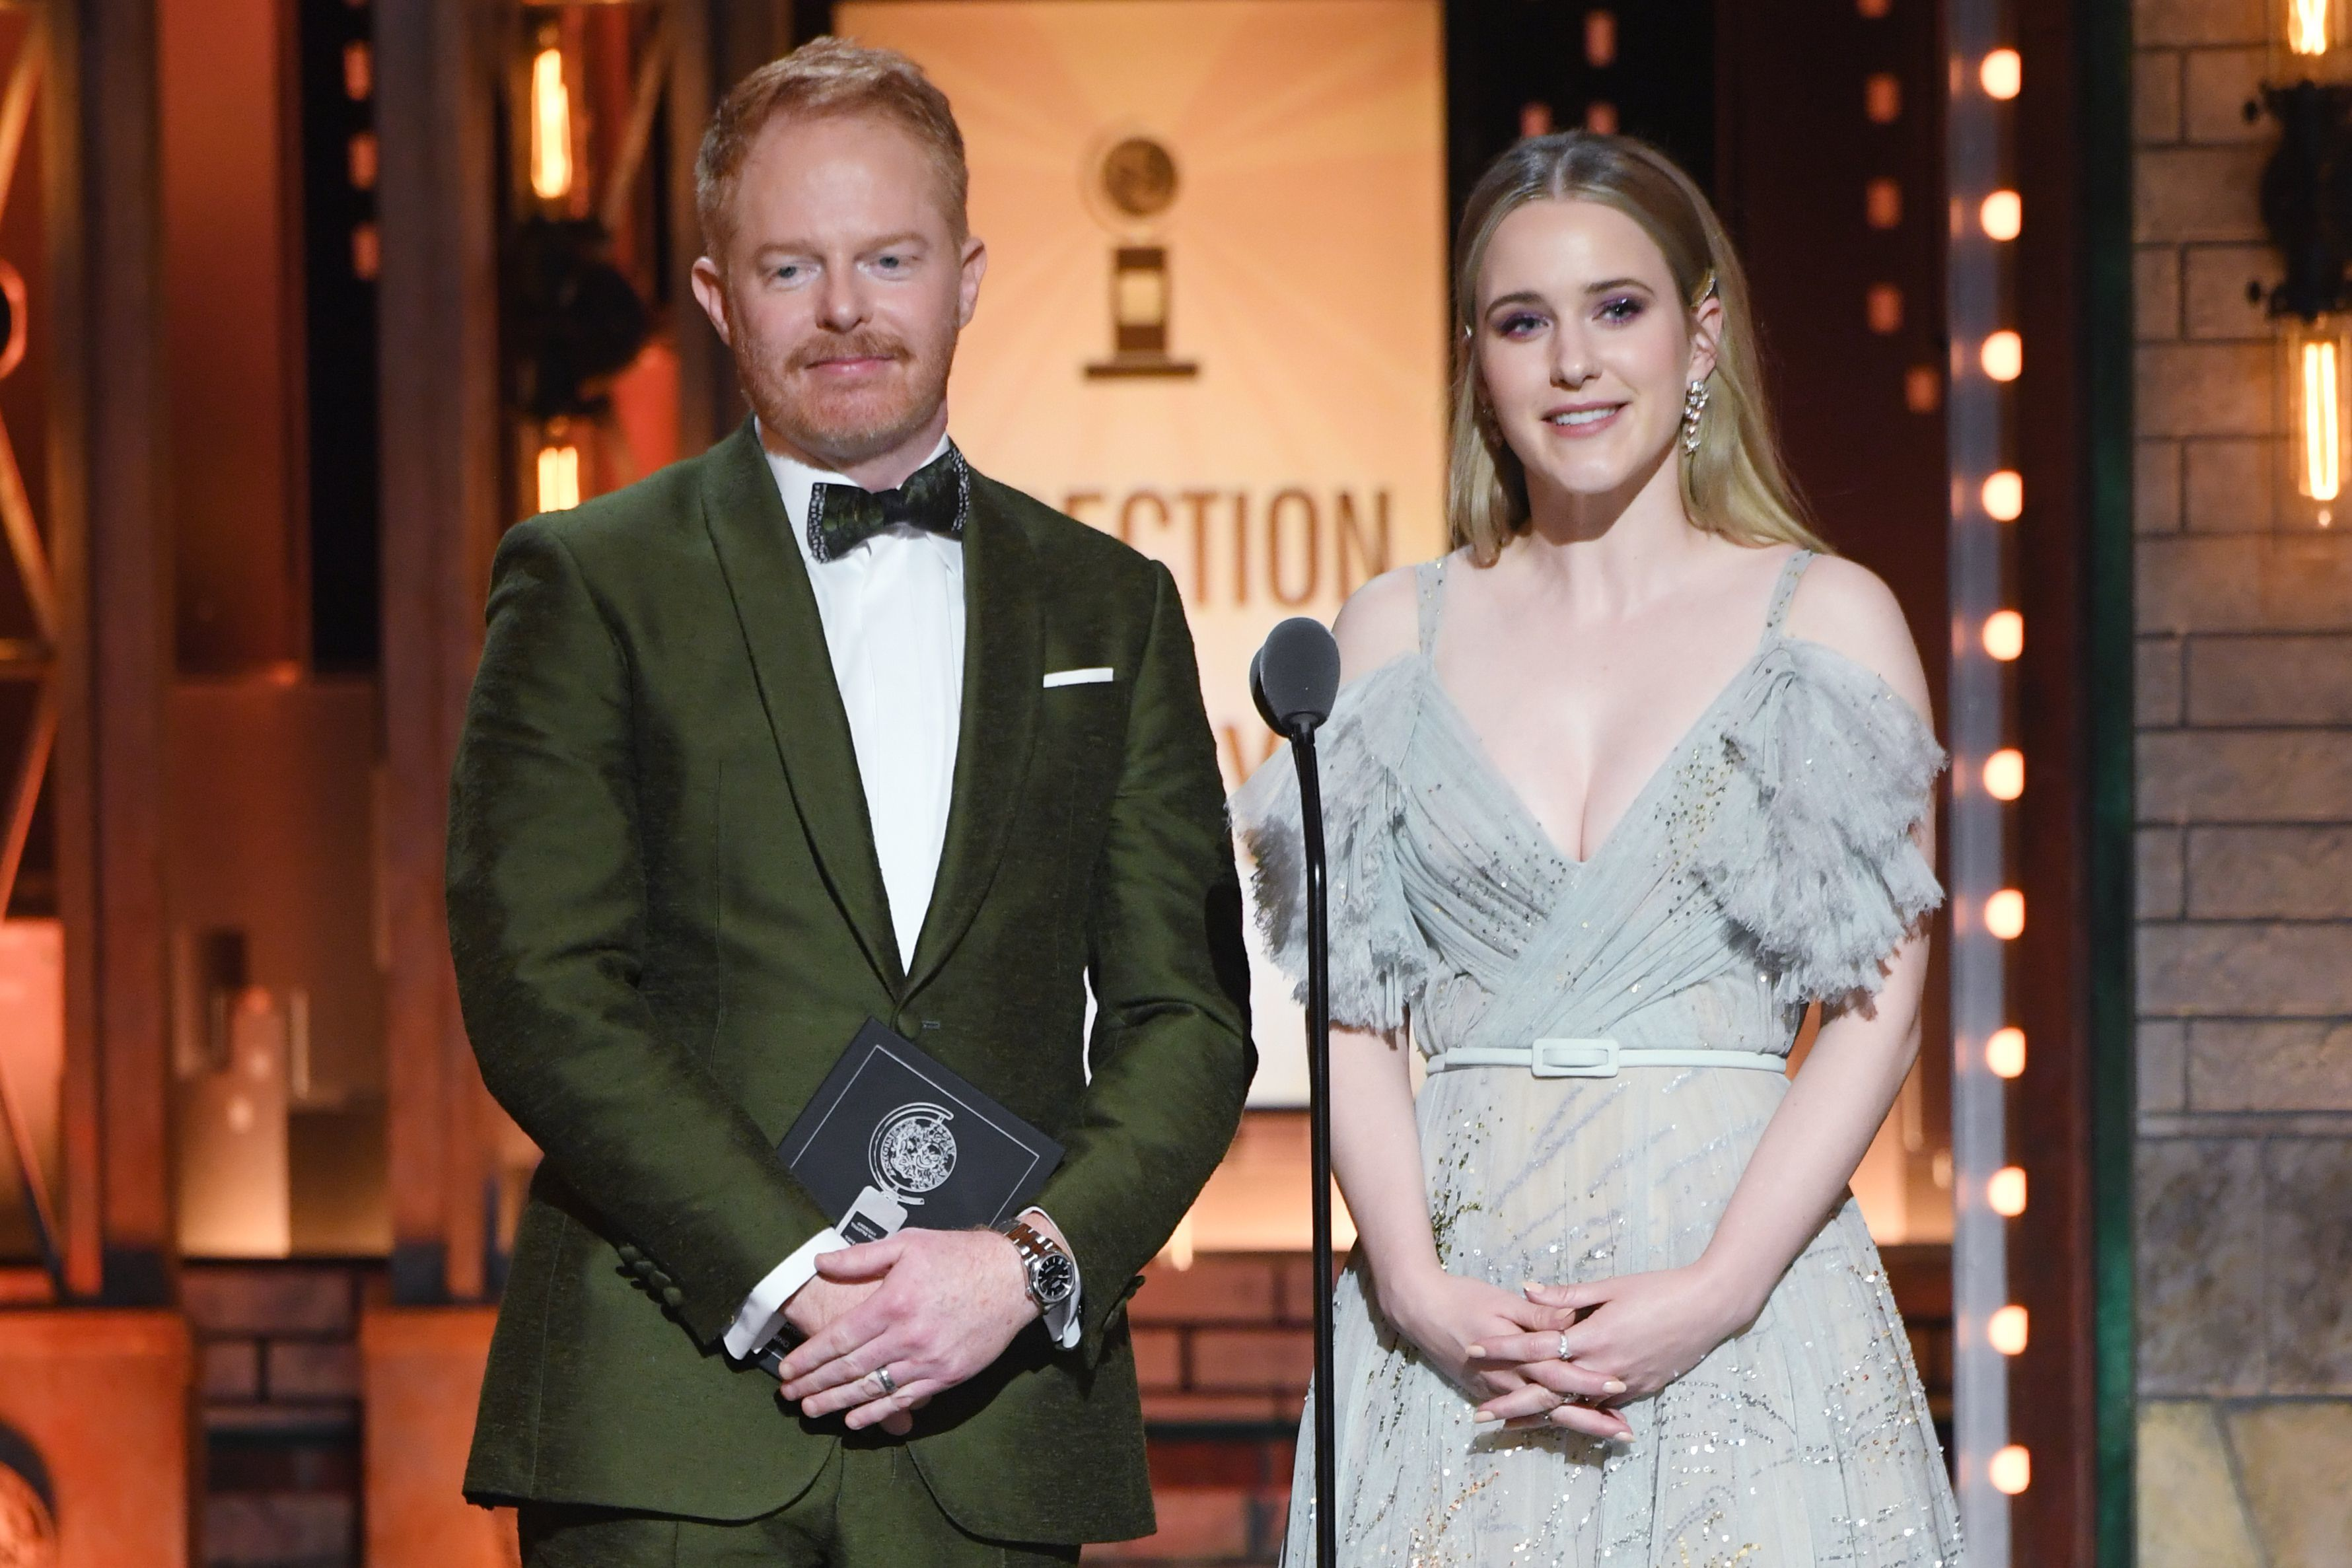 Jesse Tyler Ferguson and Rachel Brosnahan appear onstage during the 73rd Annual Tony Awards at Radio City Music Hall in New York City on June 9, 2019.